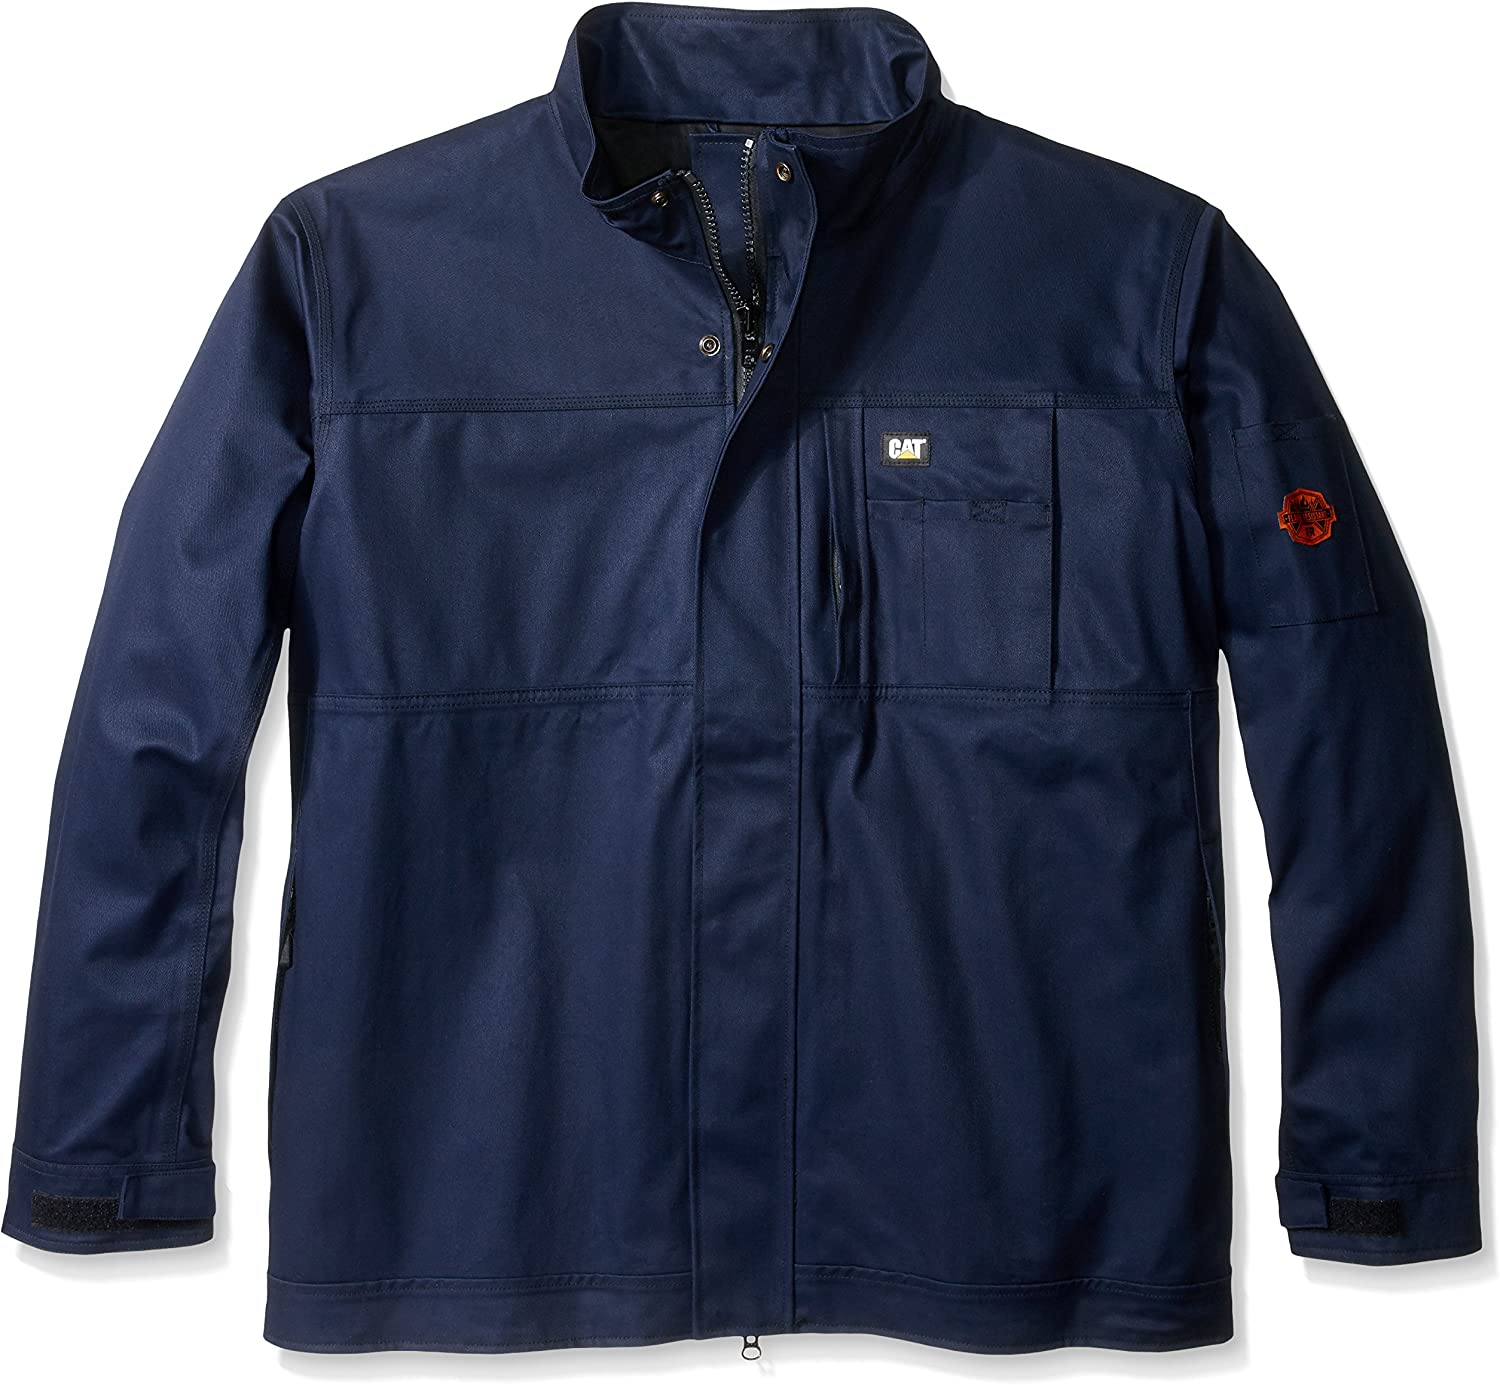 Caterpillar Men's Big and Tall Flame Resistant Uninsulated Jacket